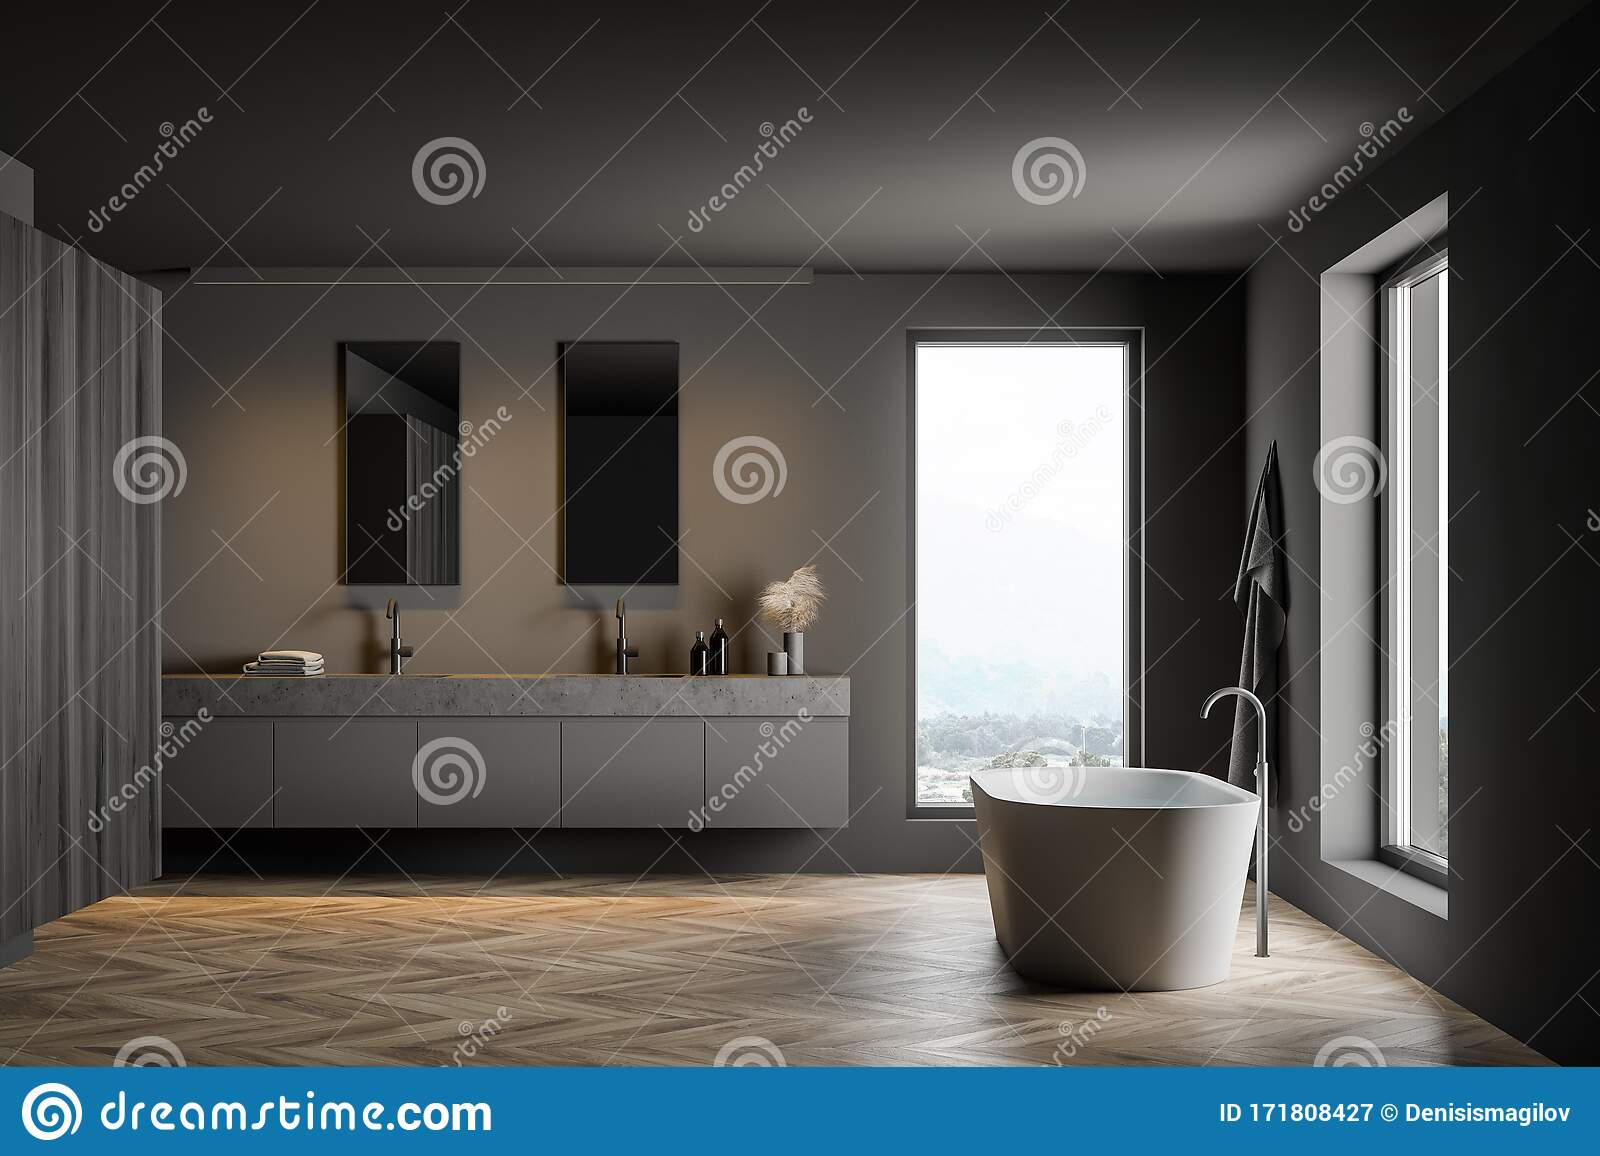 Gray And Wooden Bathroom With Cabinet Stock Illustration Illustration Of Bathroom Luxury 171808427